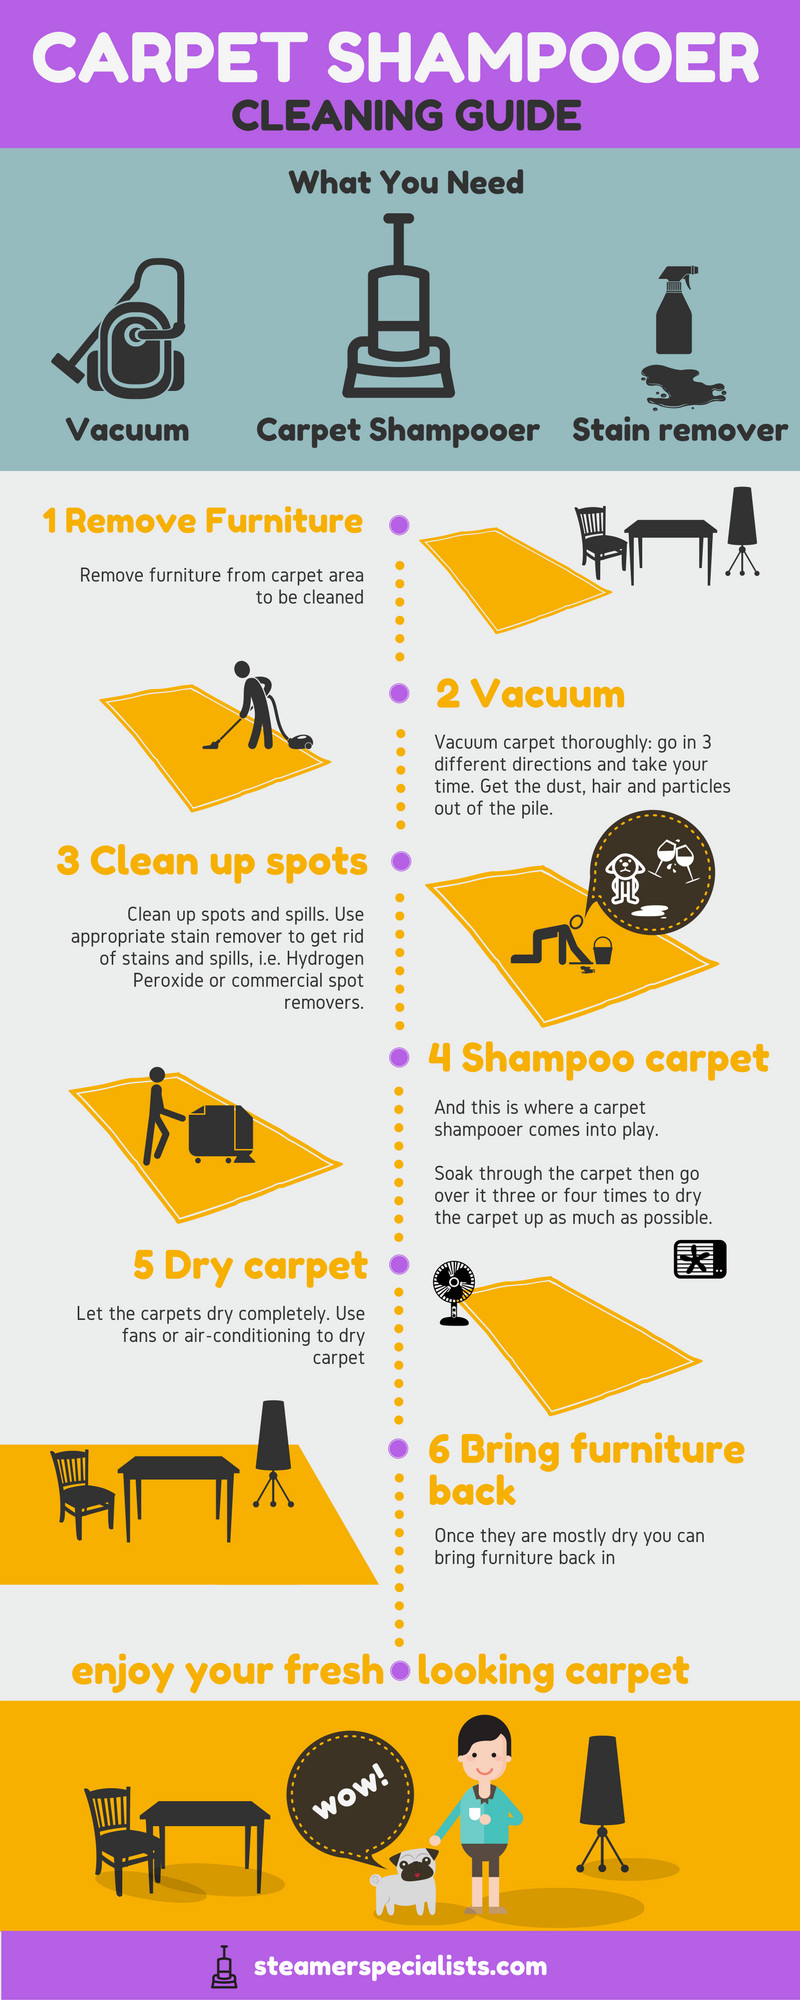 Carpet Shampooer Cleaning Guide Infographic